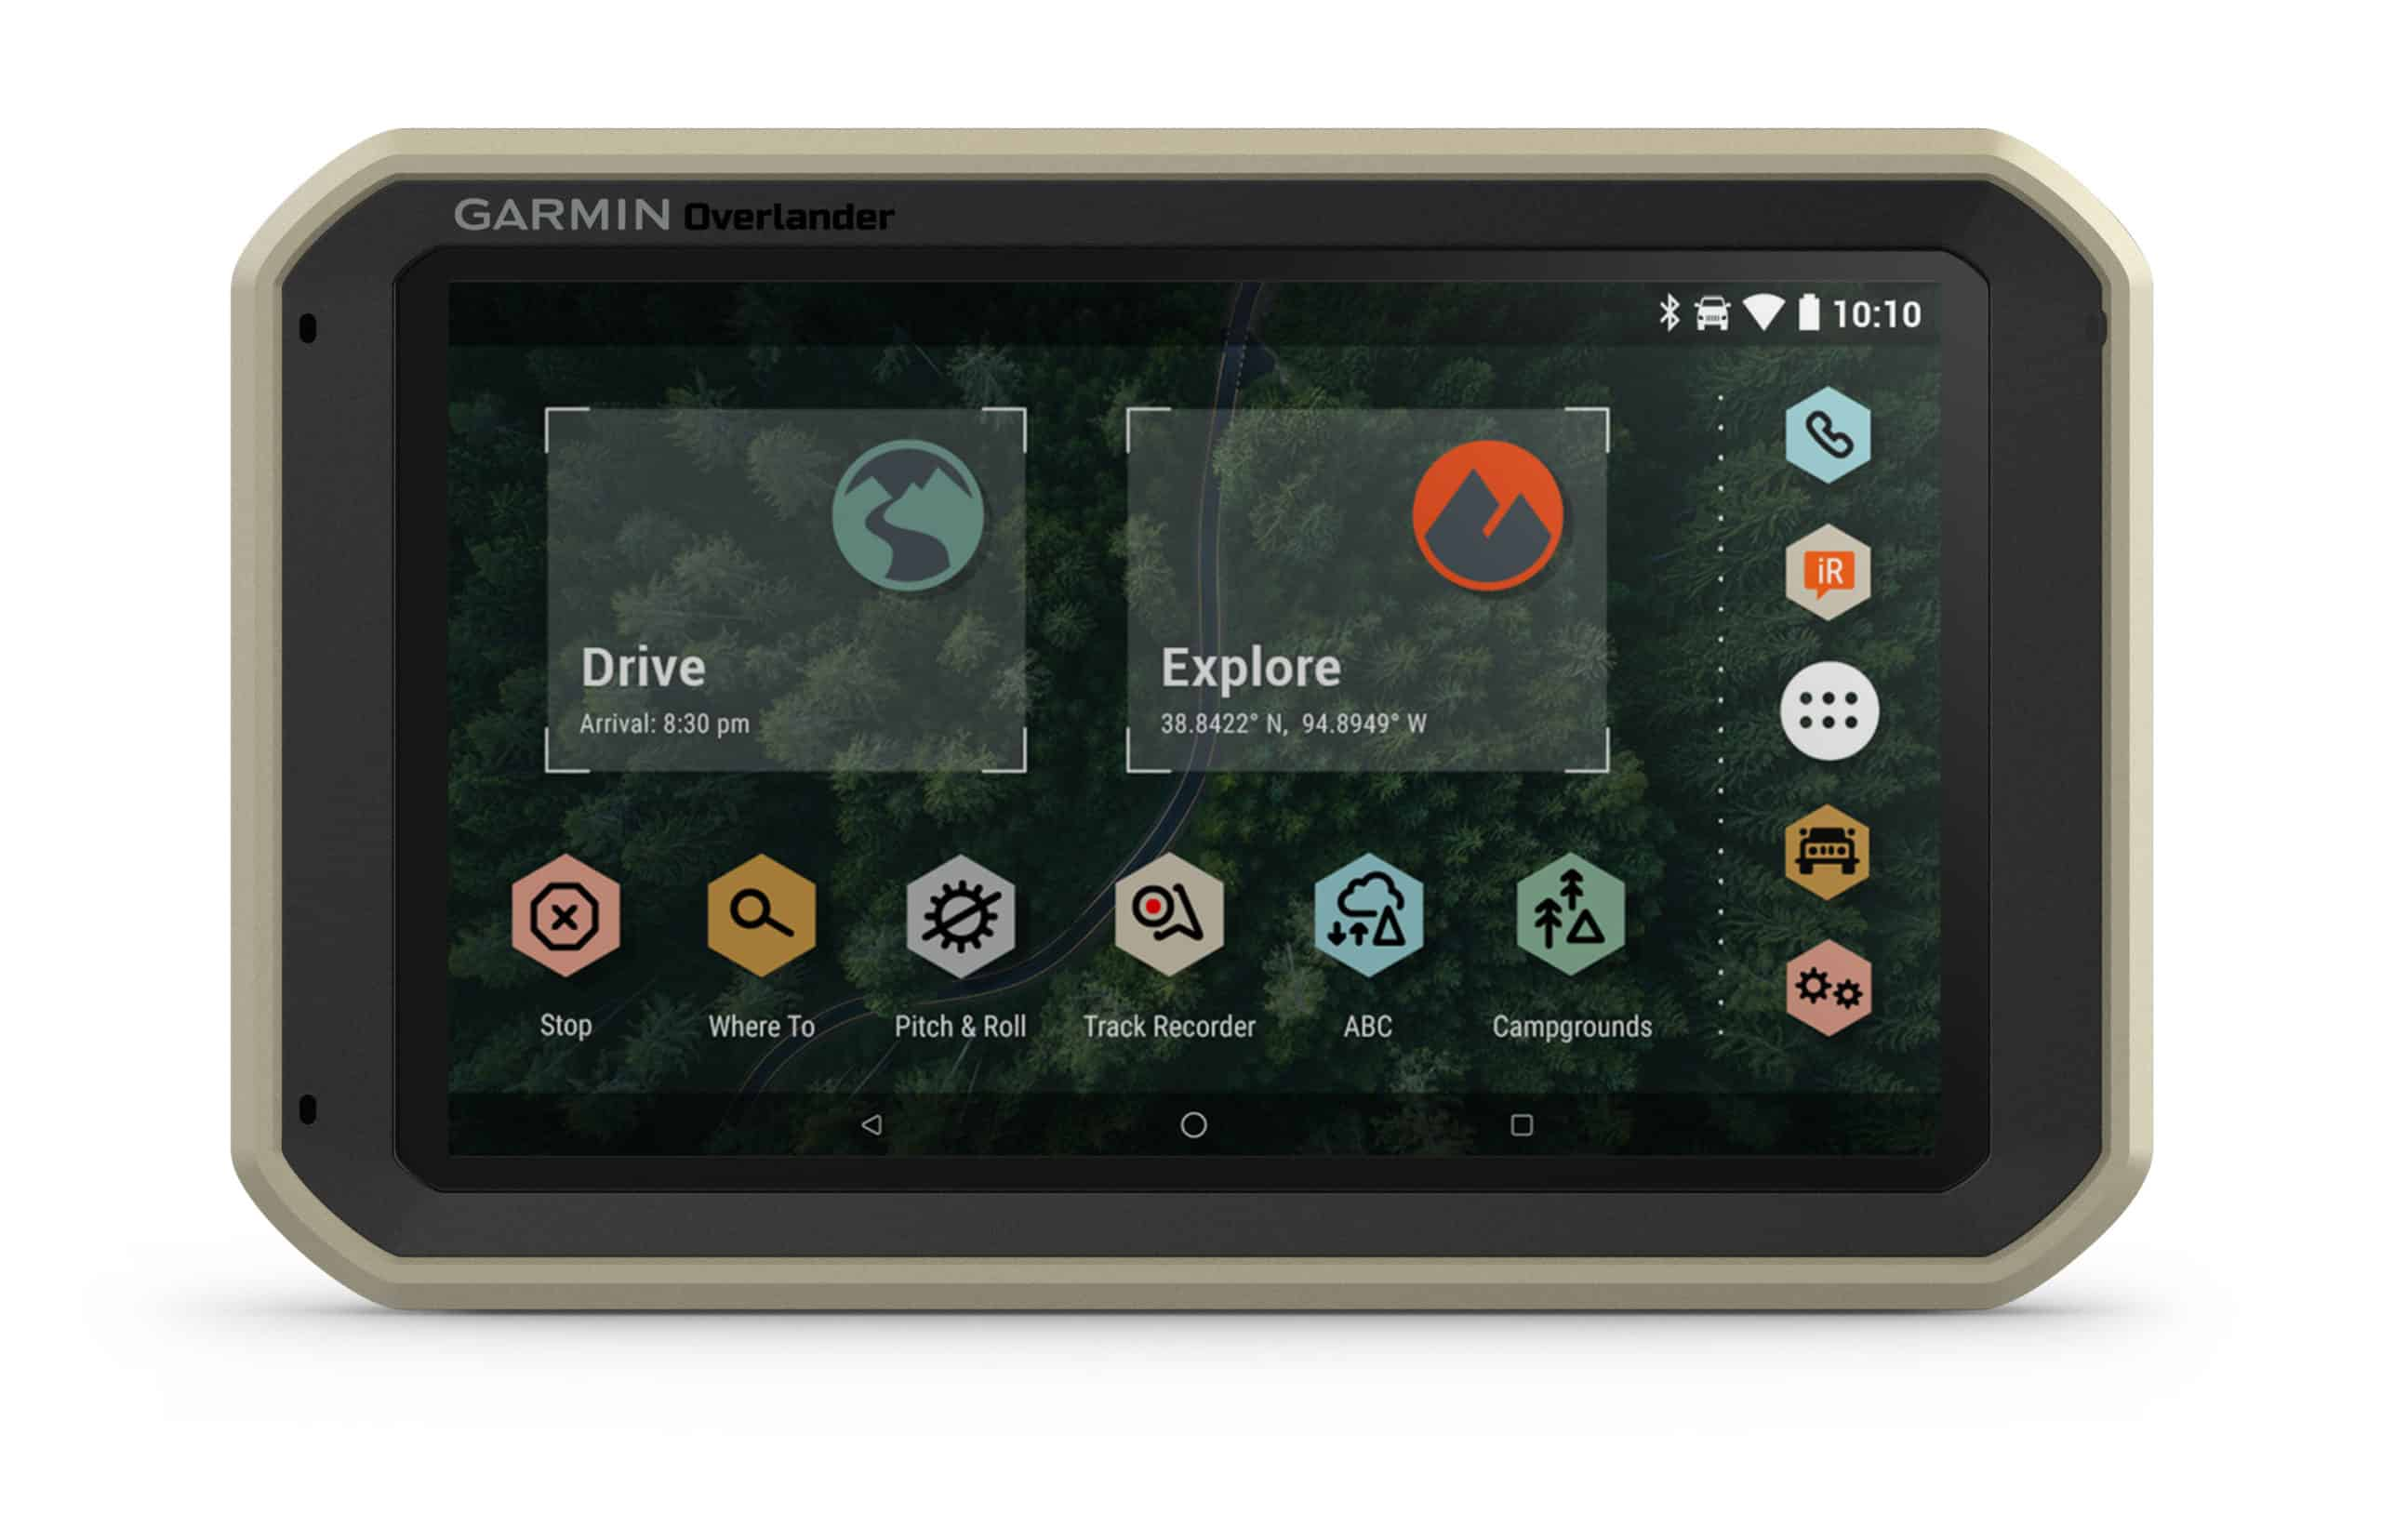 Garmin Overlander home screen